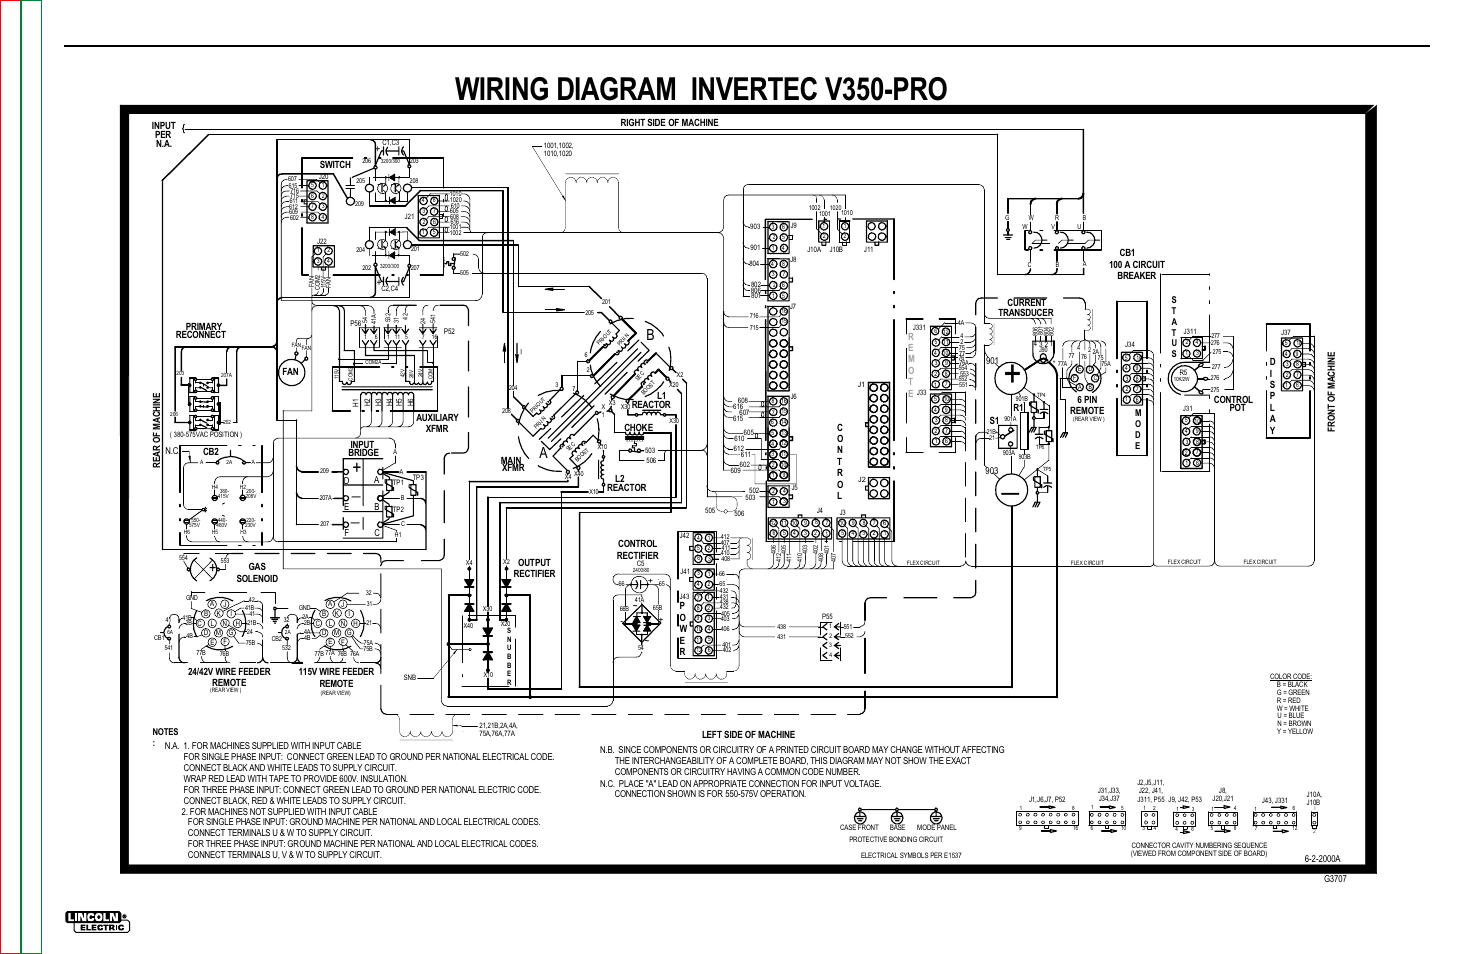 Wiring diagram invertec v350-pro, Electrical diagrams, Wiring diagram -  invertec v350-pro | Lincoln Electric INVERTEC V350-PRO SVM152-A User Manual  | Page ...